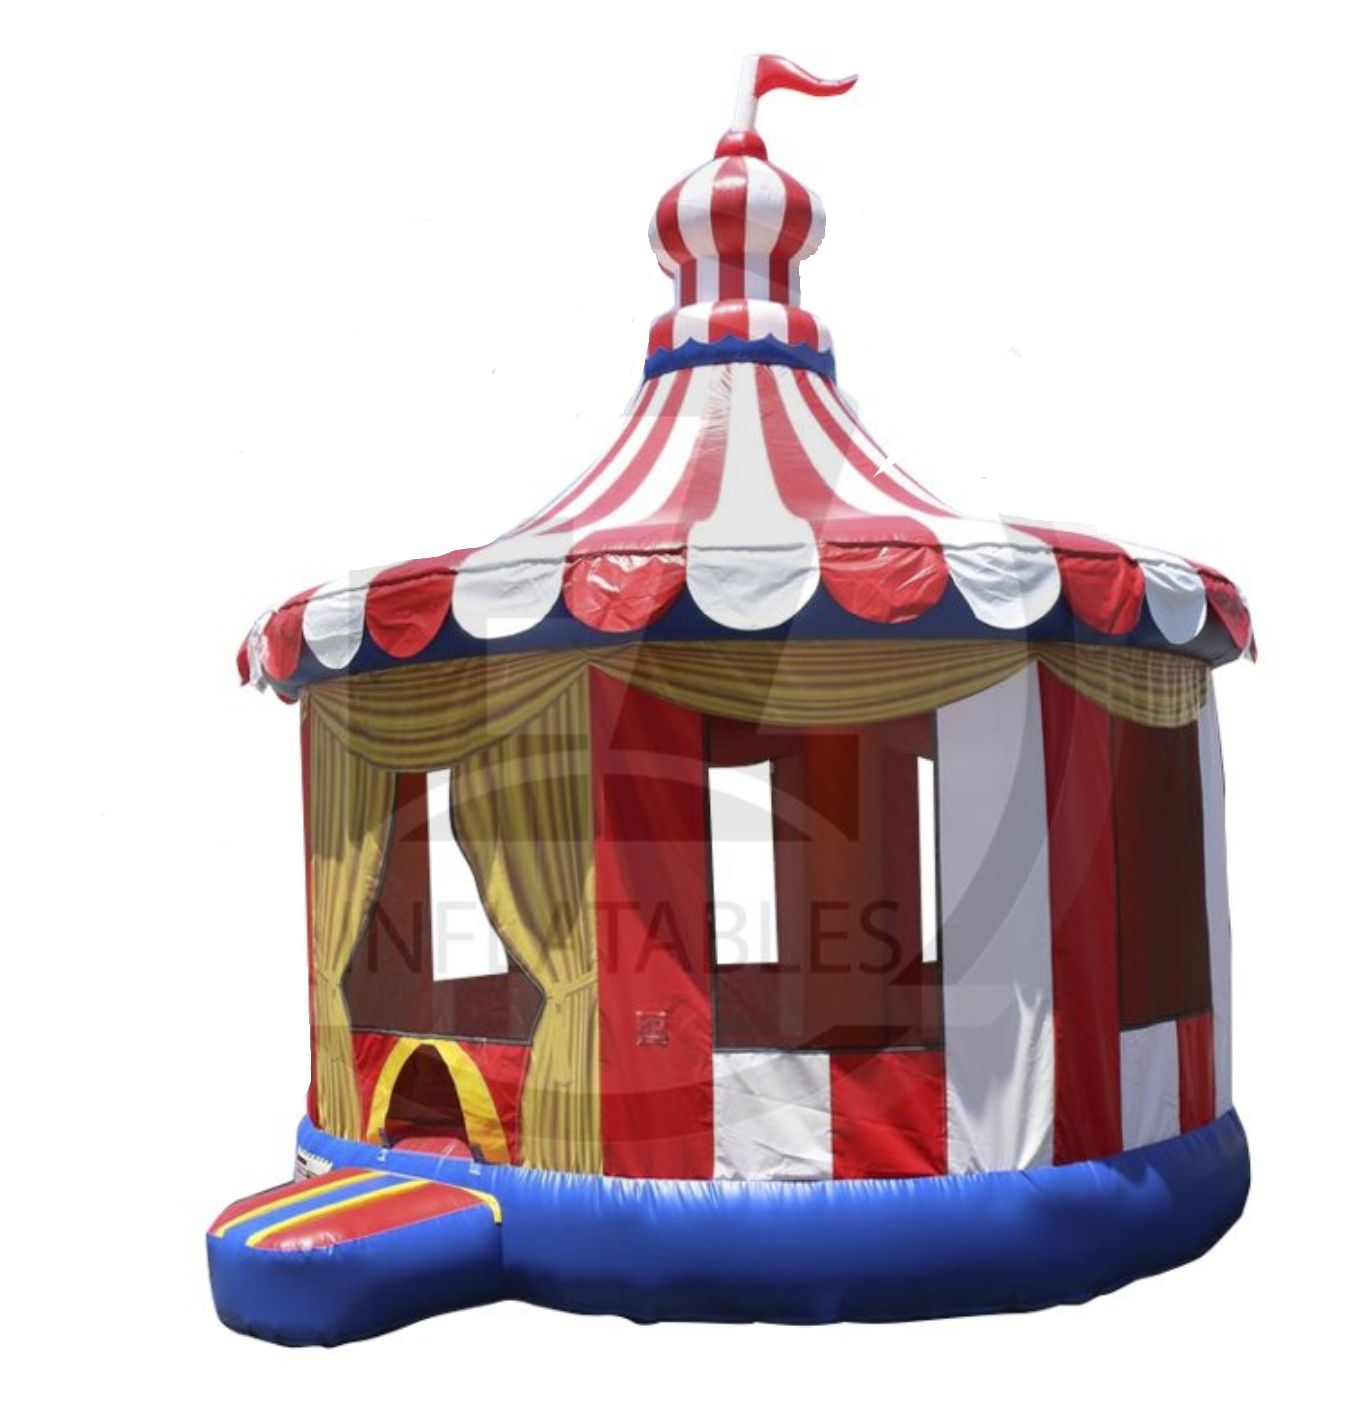 Carnival tent bounce house rental in Mequon, Cedarburg, Fox Point, and Bayside Wisconsin